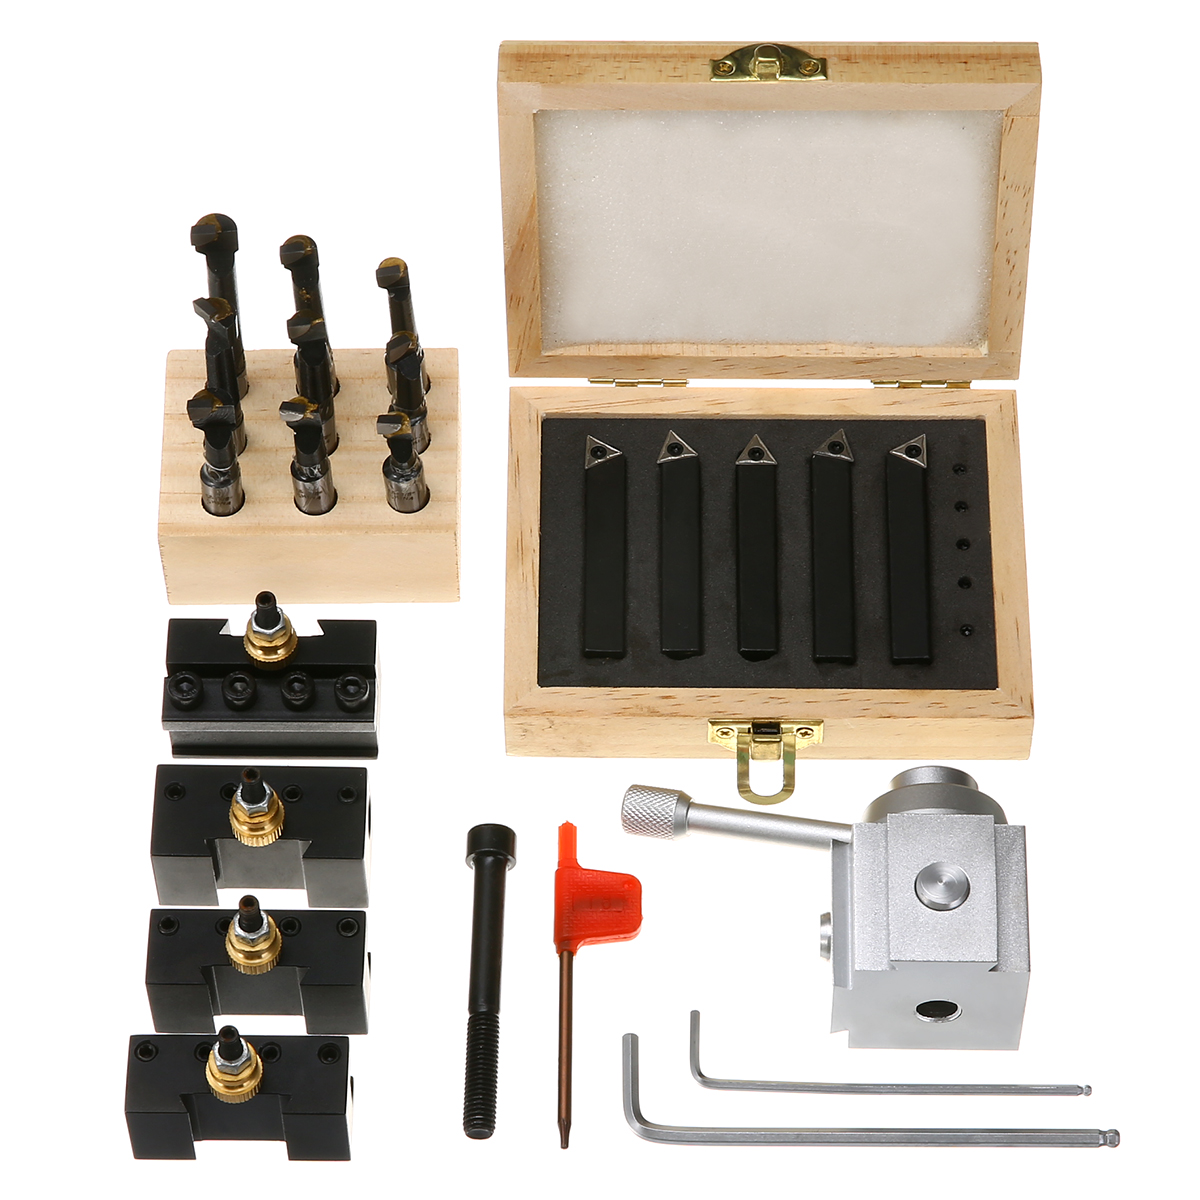 Mayitr 9pcs 3/8 Boring Bar + 5pcs Quick Change Tool Post Holder + 5pcs 3/8 Turning Tool Holder with Wooden Box ser1616h16 holder external thread turning tool boring bar holder with 10pcs 16er ag60 inserts